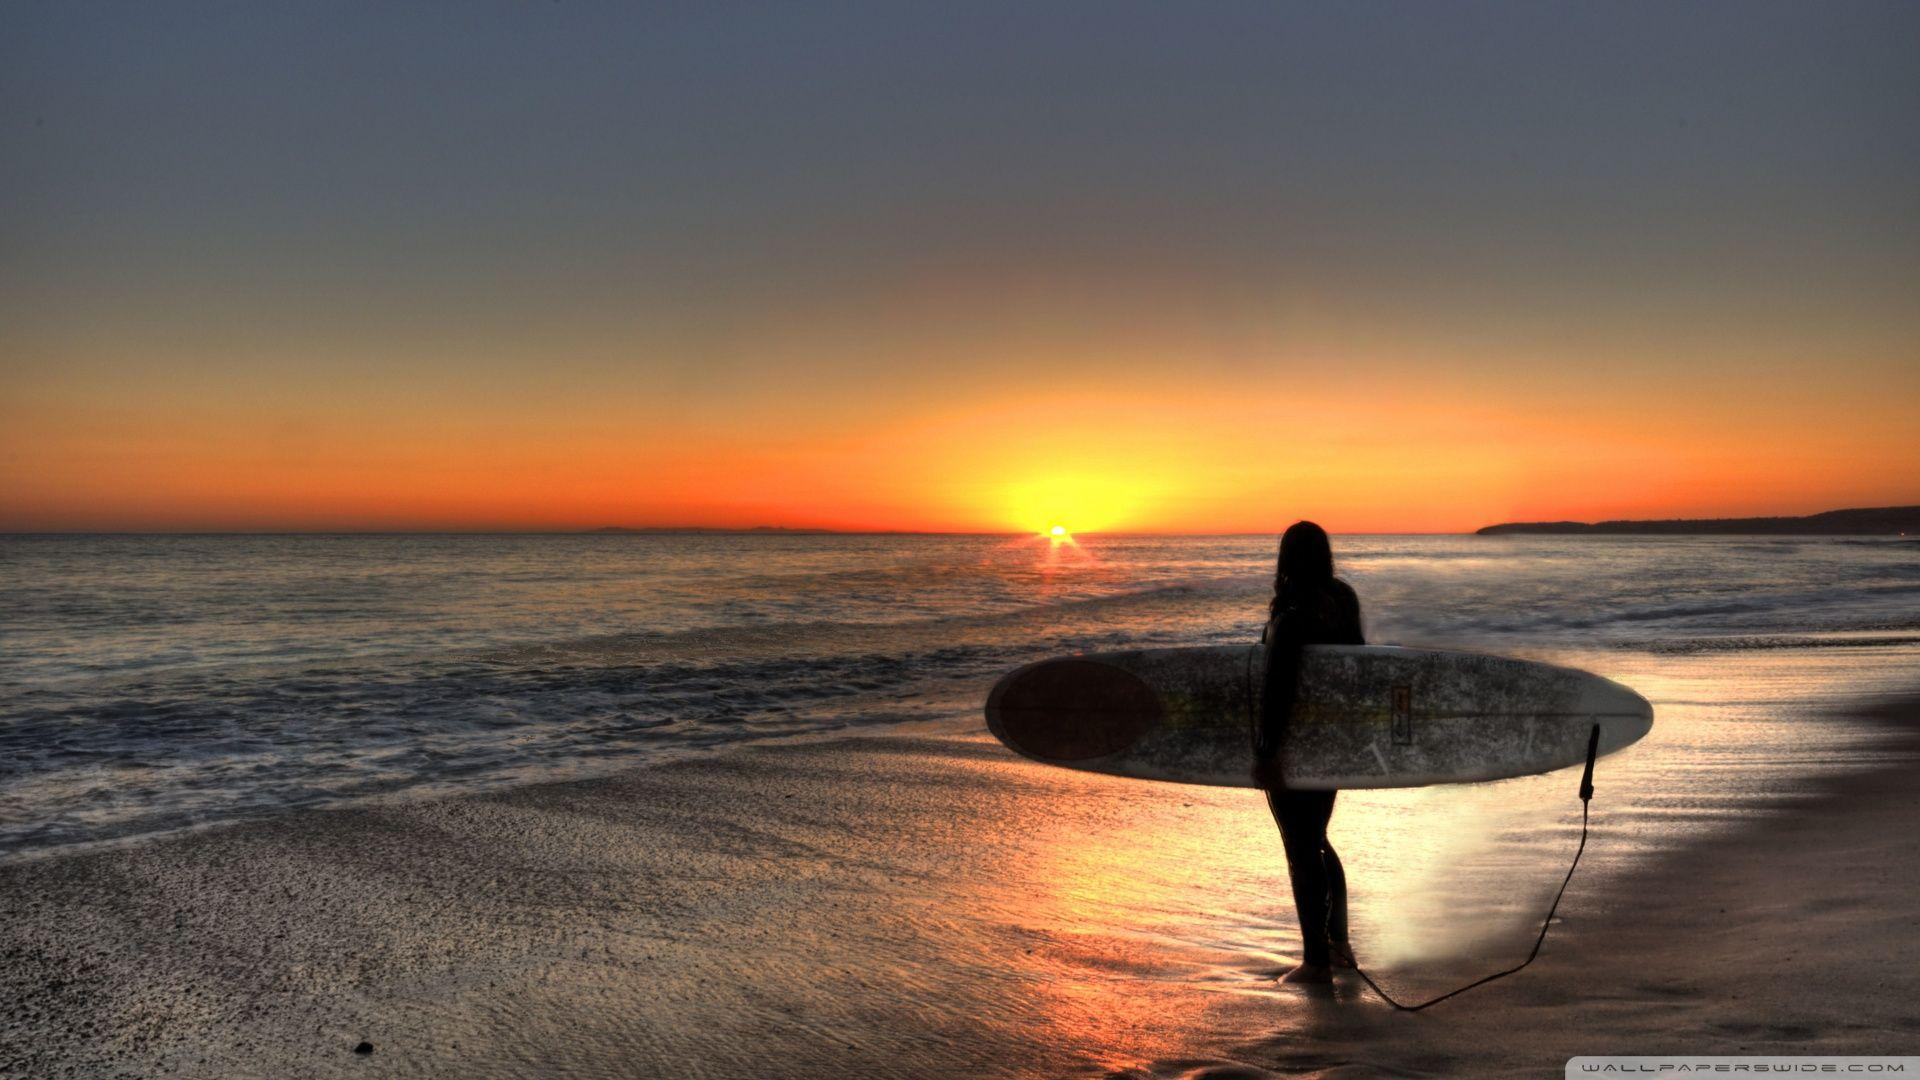 Hd Surfing Wallpapers Wallpaper Cave